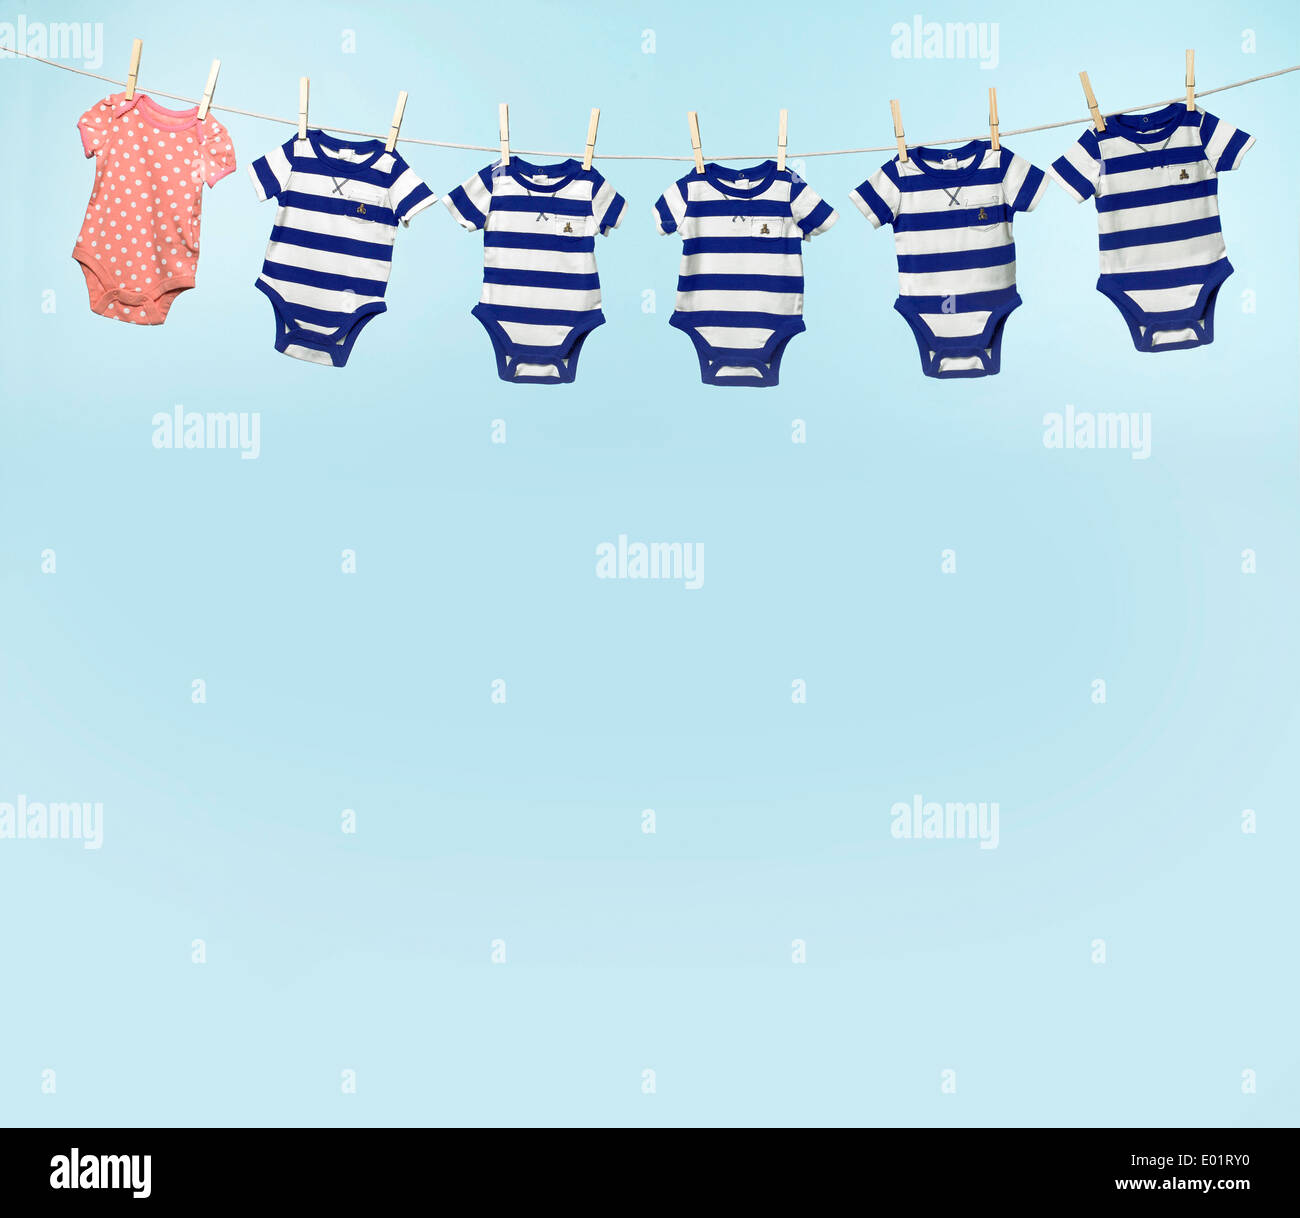 Baby light blue background with 6 baby clothes - Stock Image